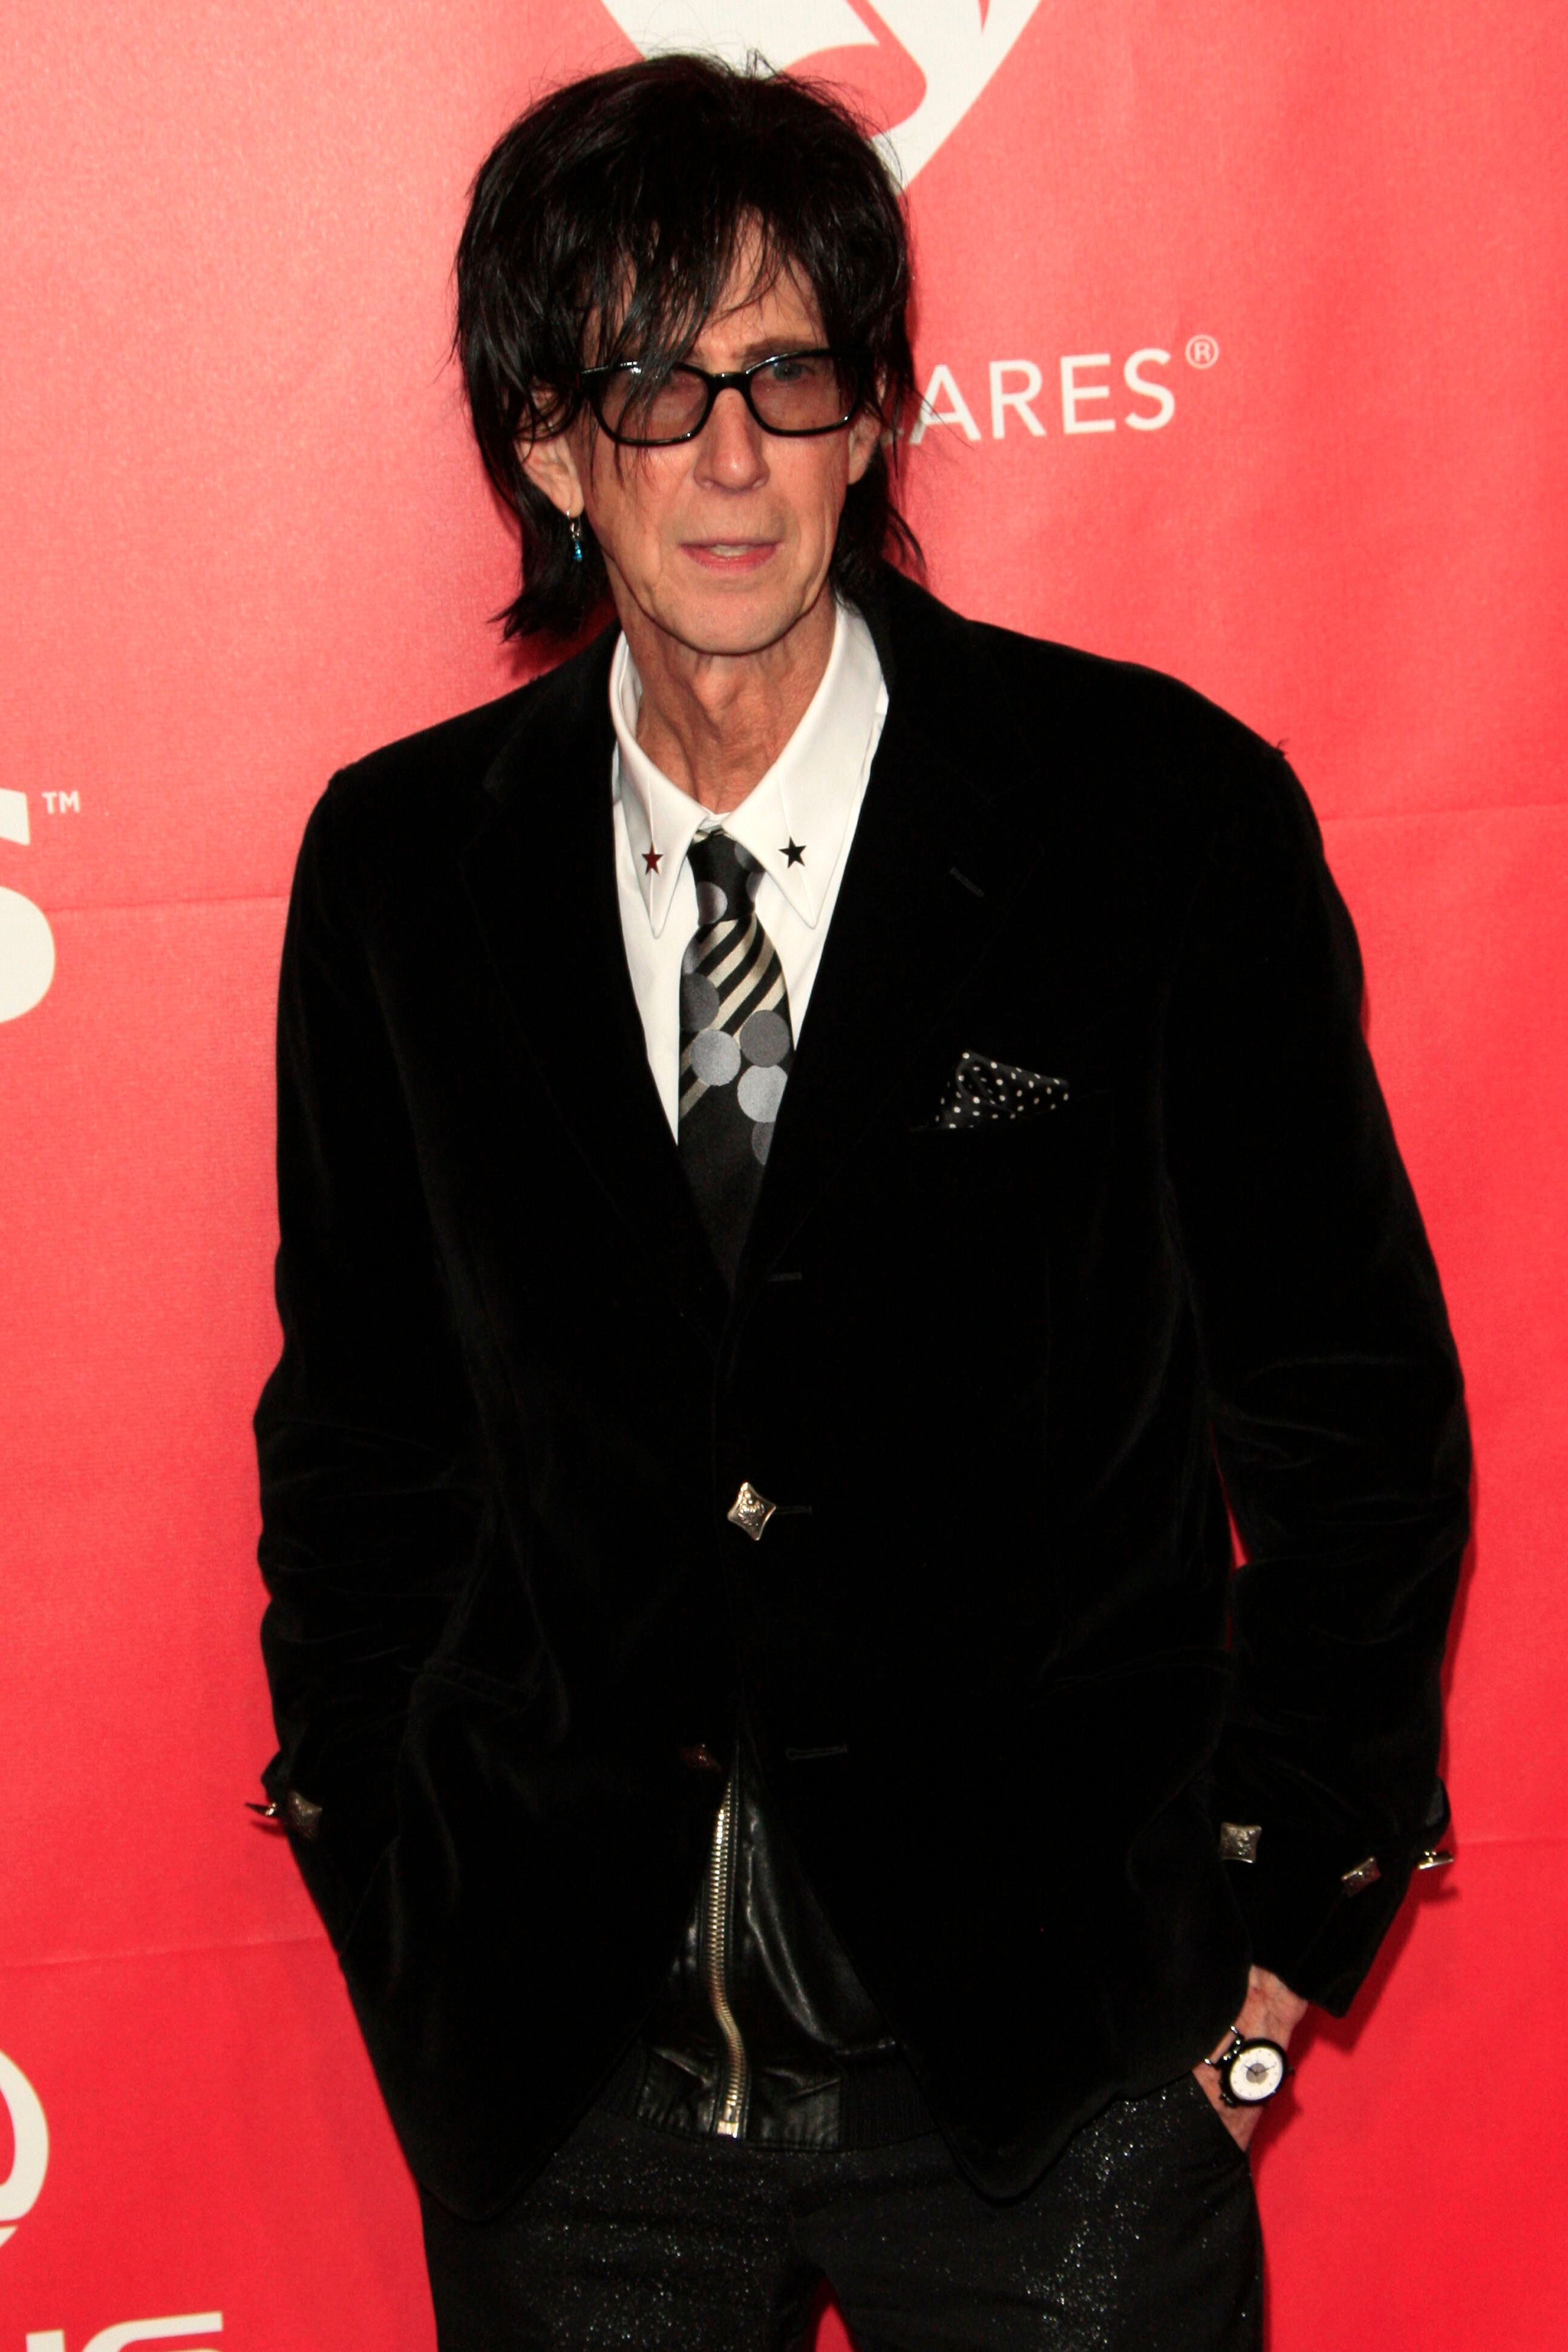 Ric Ocasek of The Cars has reportedly died.